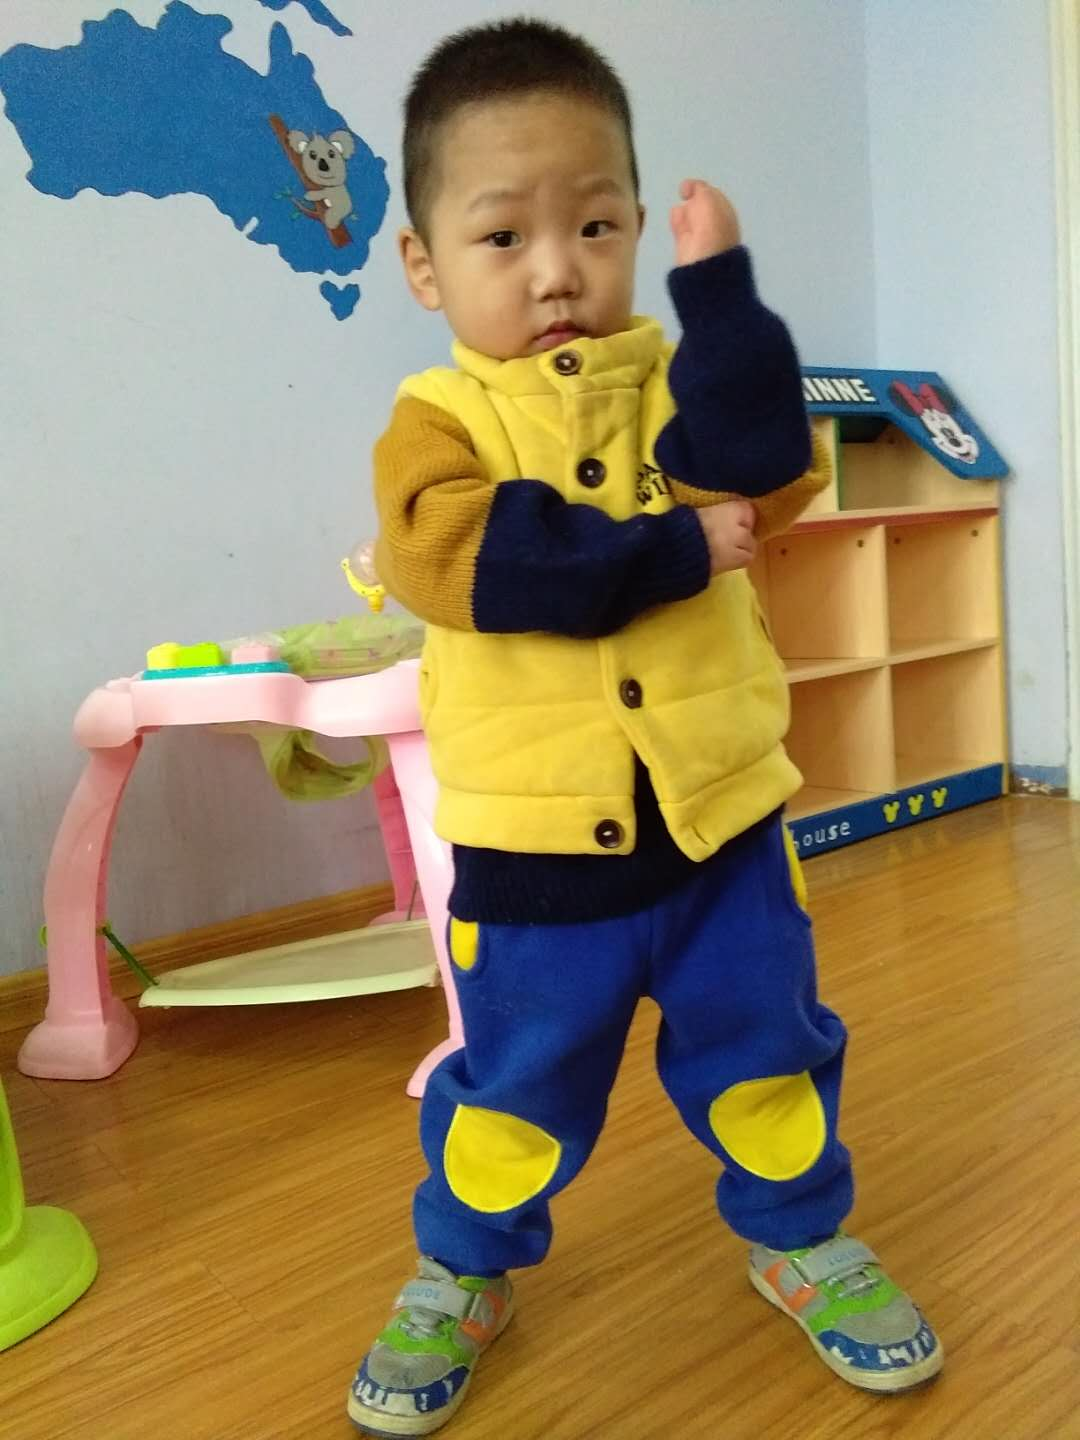 Tanis Family Adoption: Hey Jude is raising money on AdoptTogether for their adoption from China.